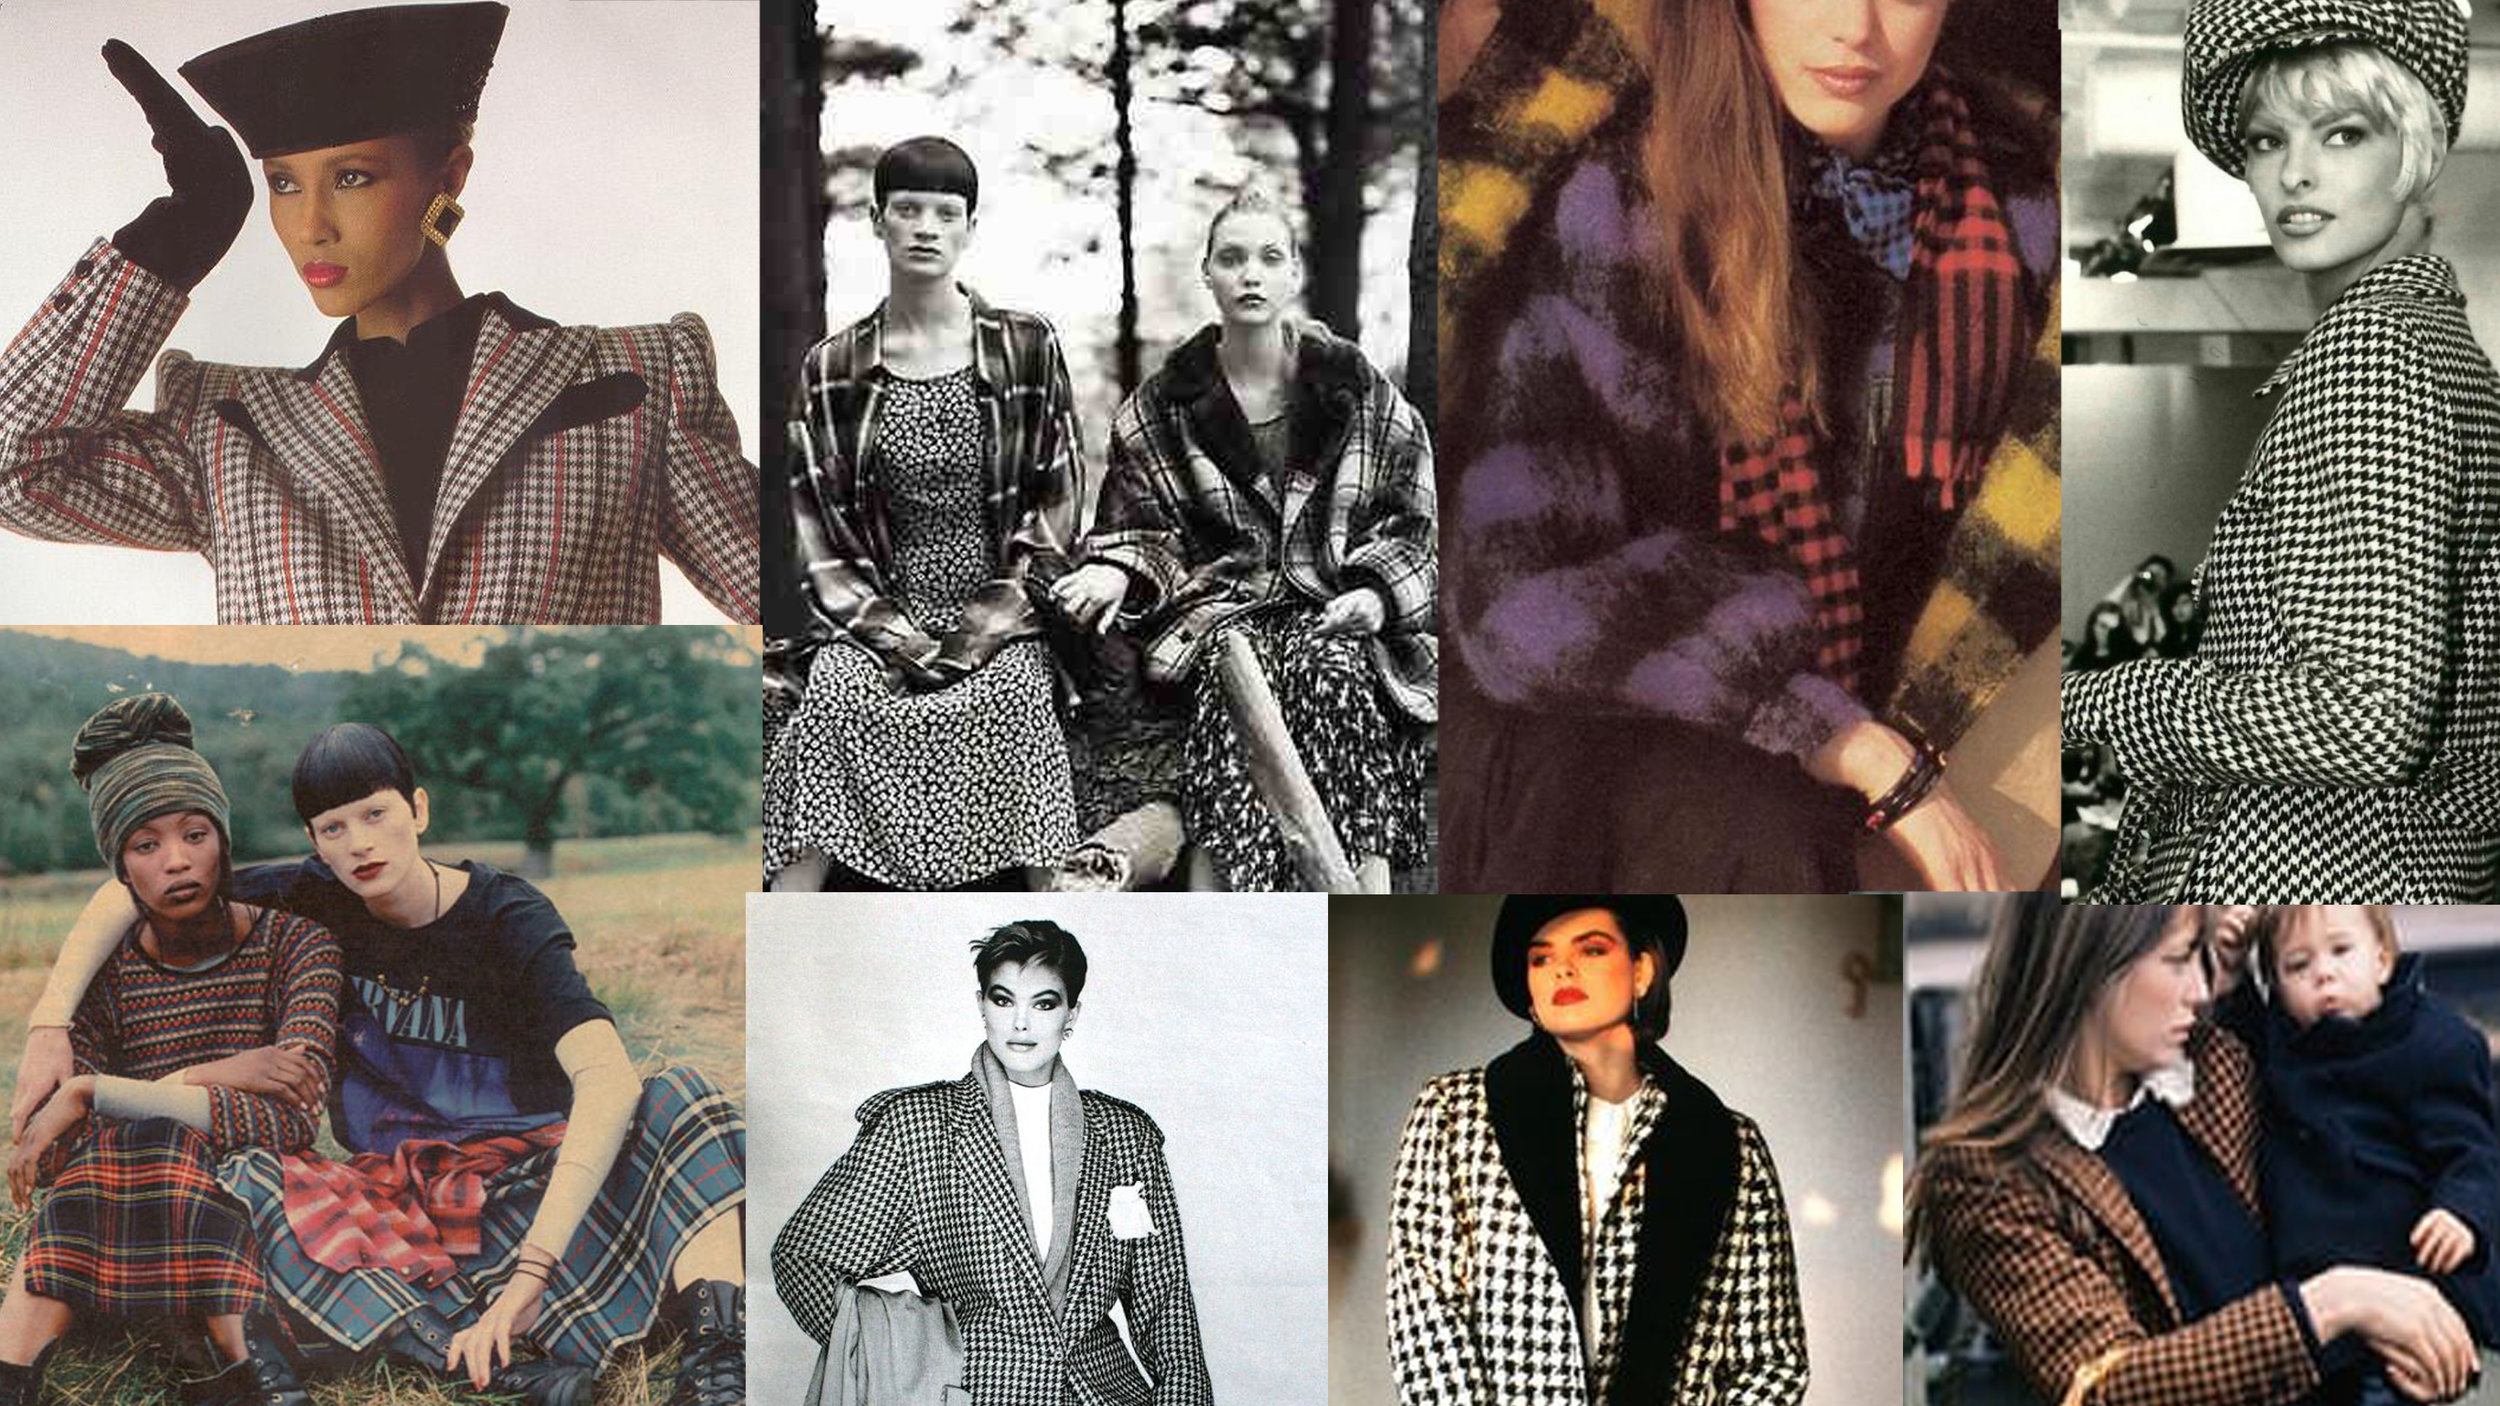 Clockwise from top Left: Iman 1980s, Perry Ellis by Marc Jacobs Fall 1992, Buffalo Plaid Vogue 1990, Linda Evangelista 1990s Anna Sui Show, Jane Birkin 1970s,